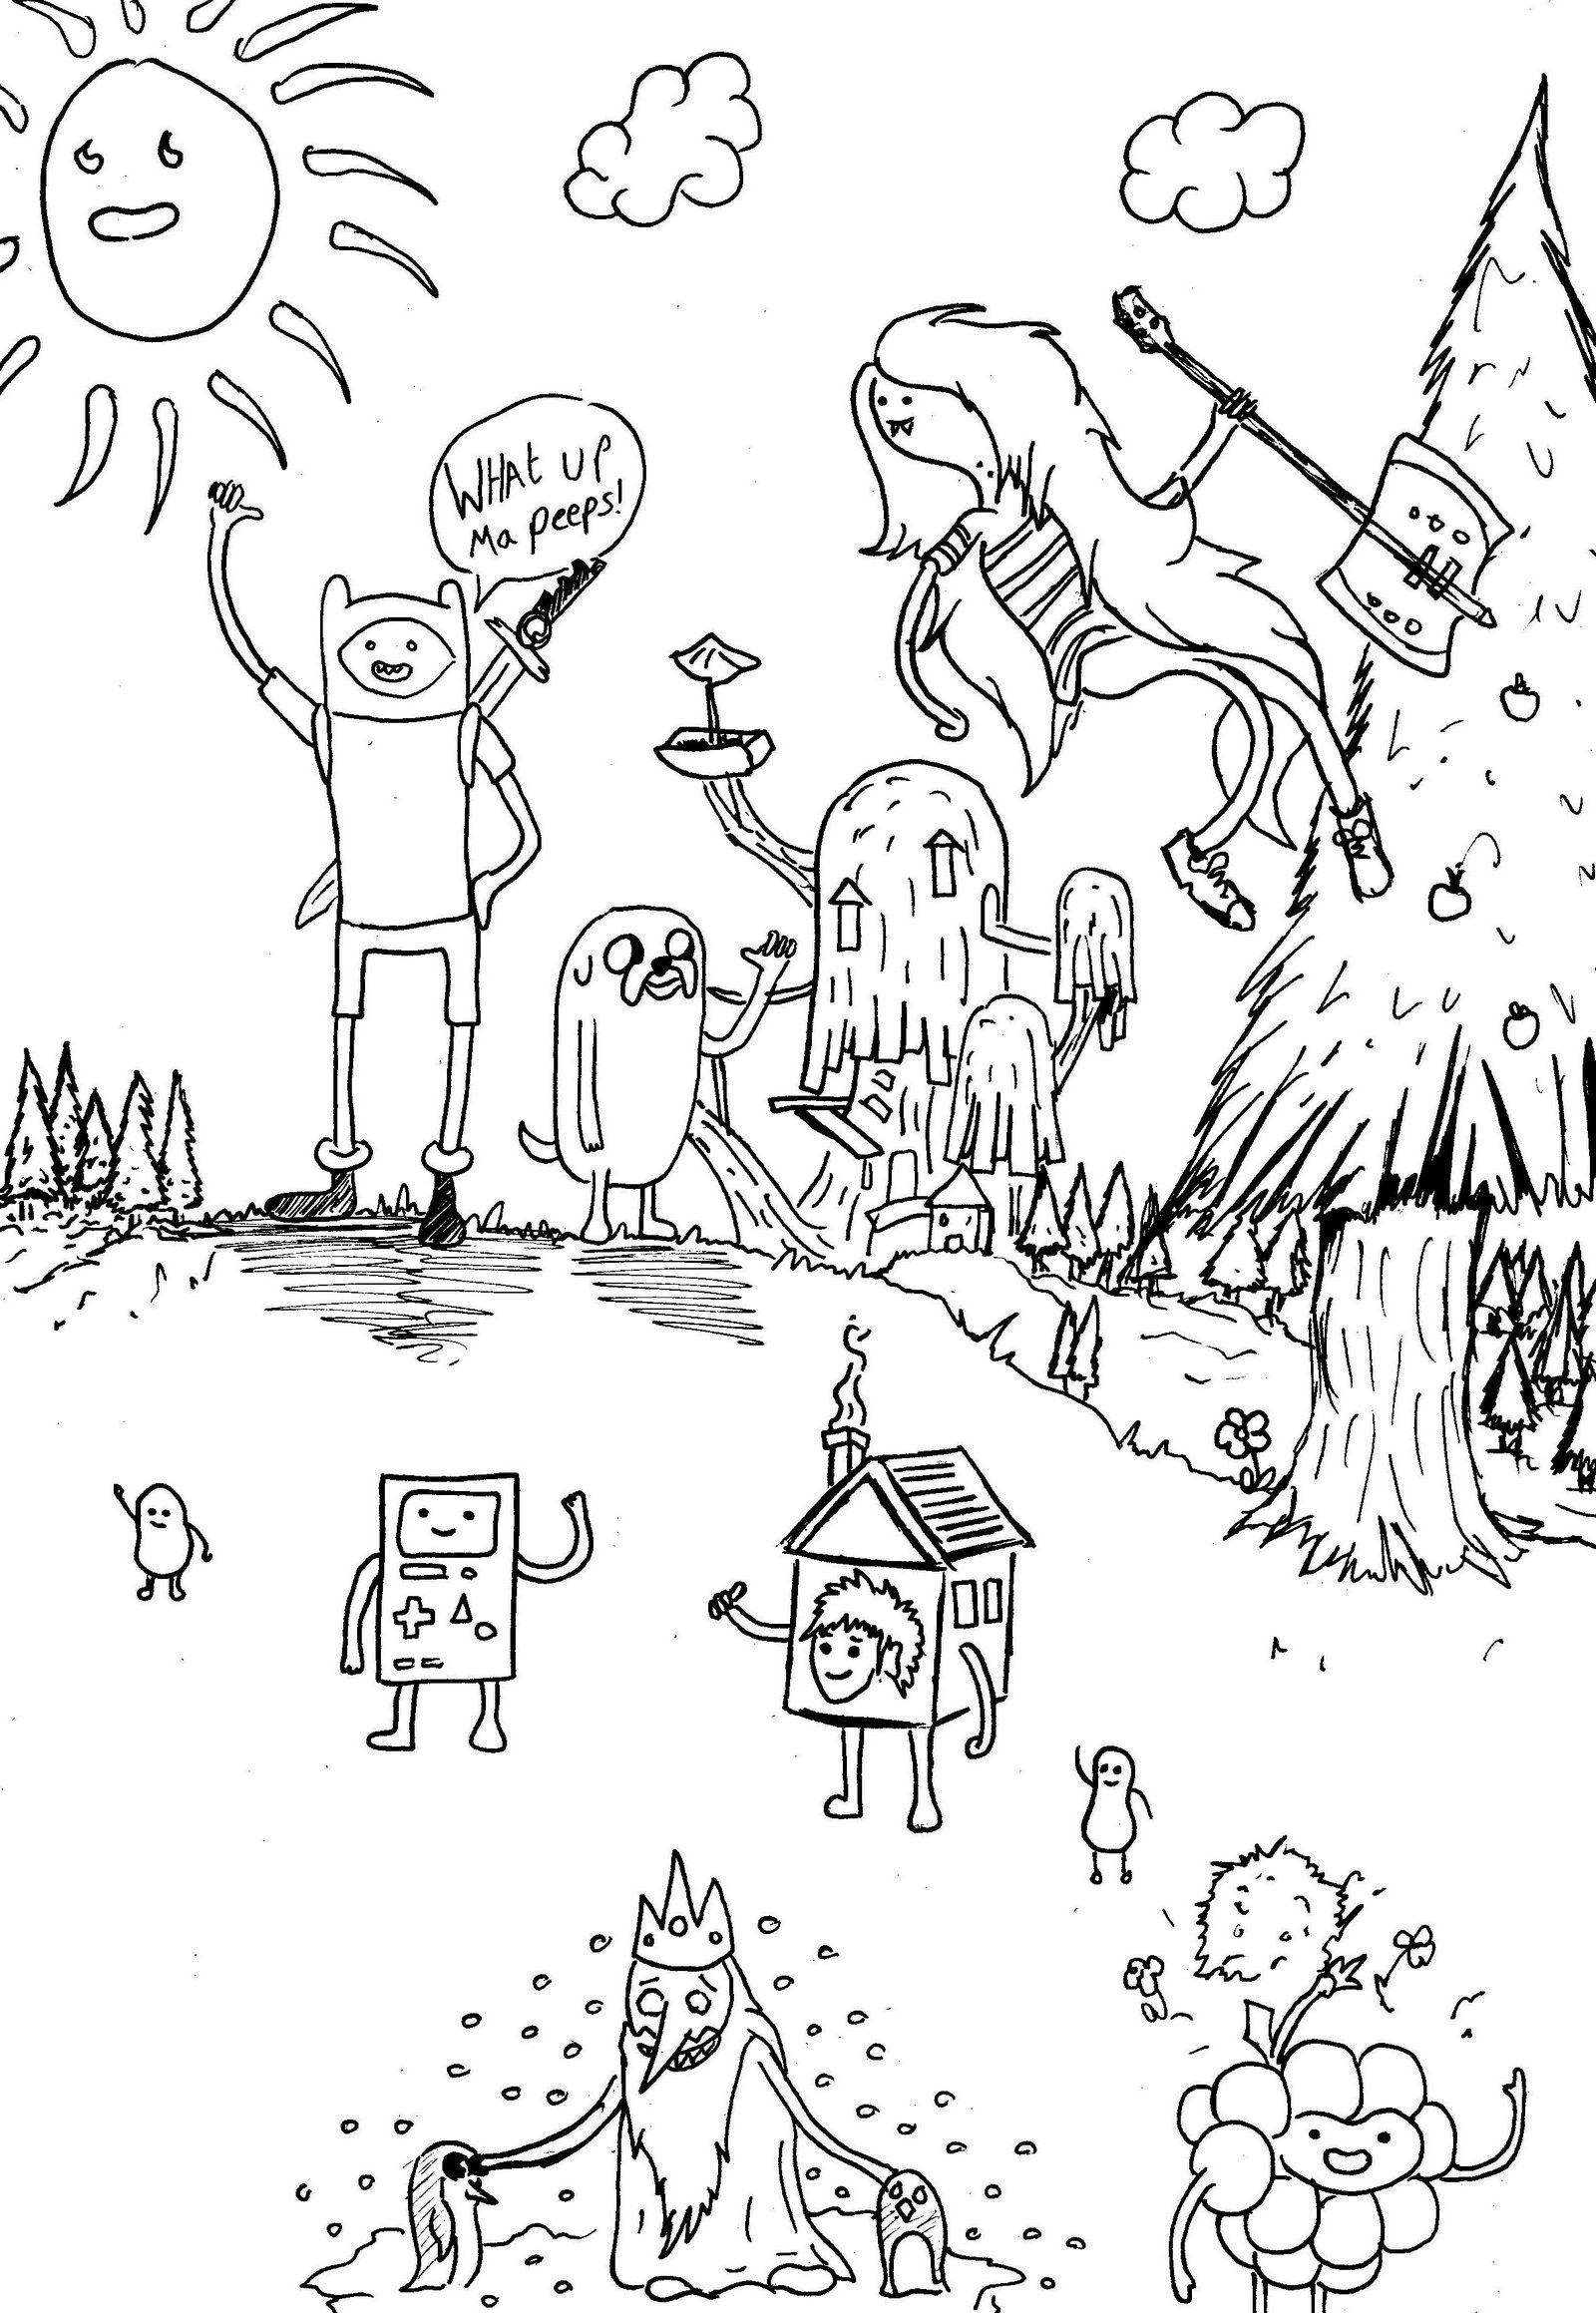 adventure time doodle cartoon network coloring page jpg